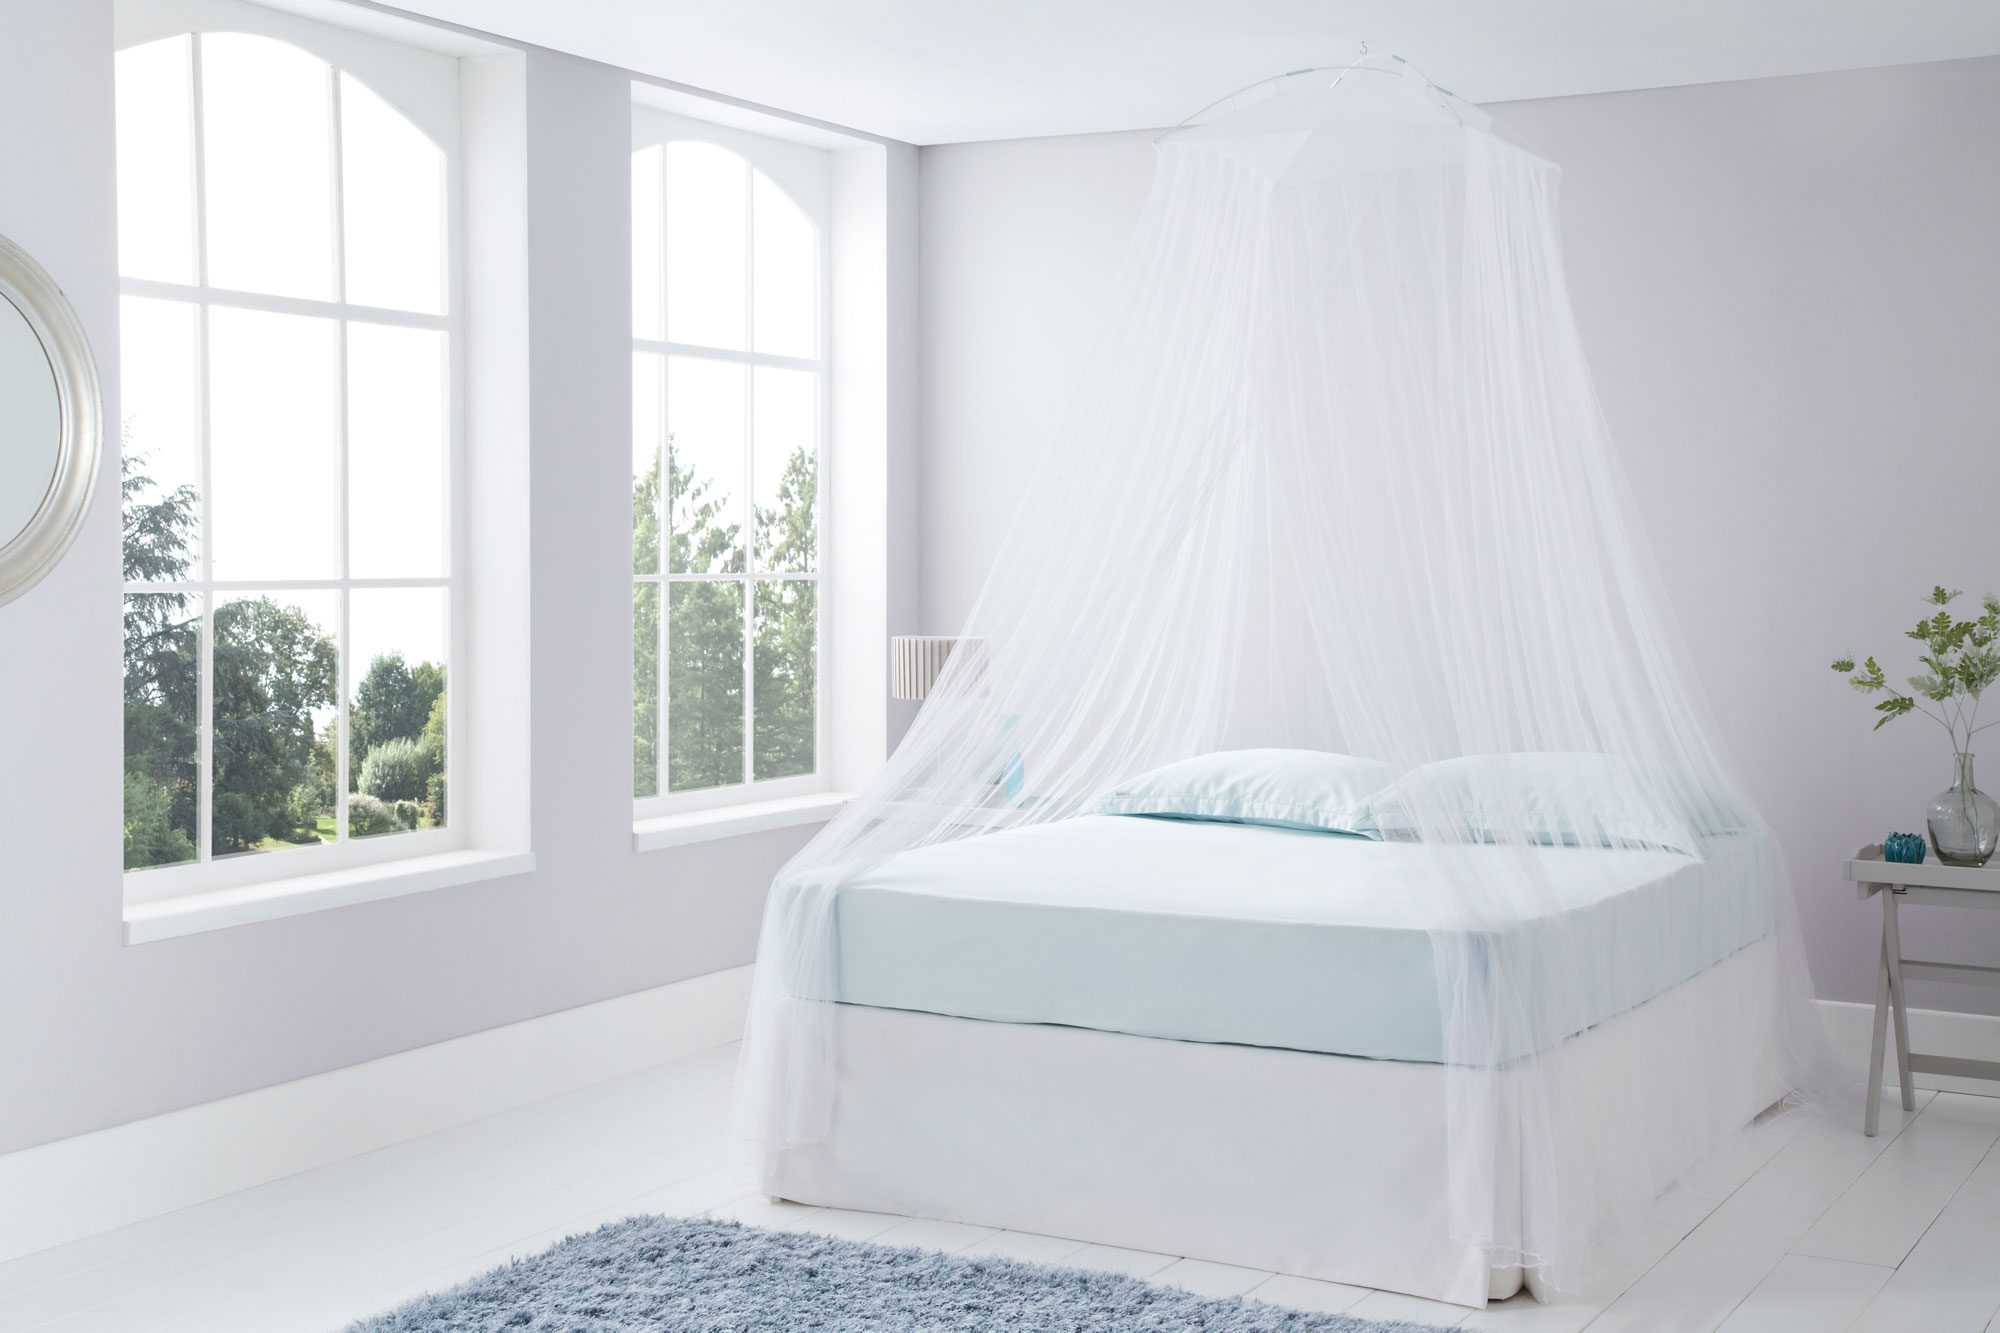 White Mosquito Net For Bed